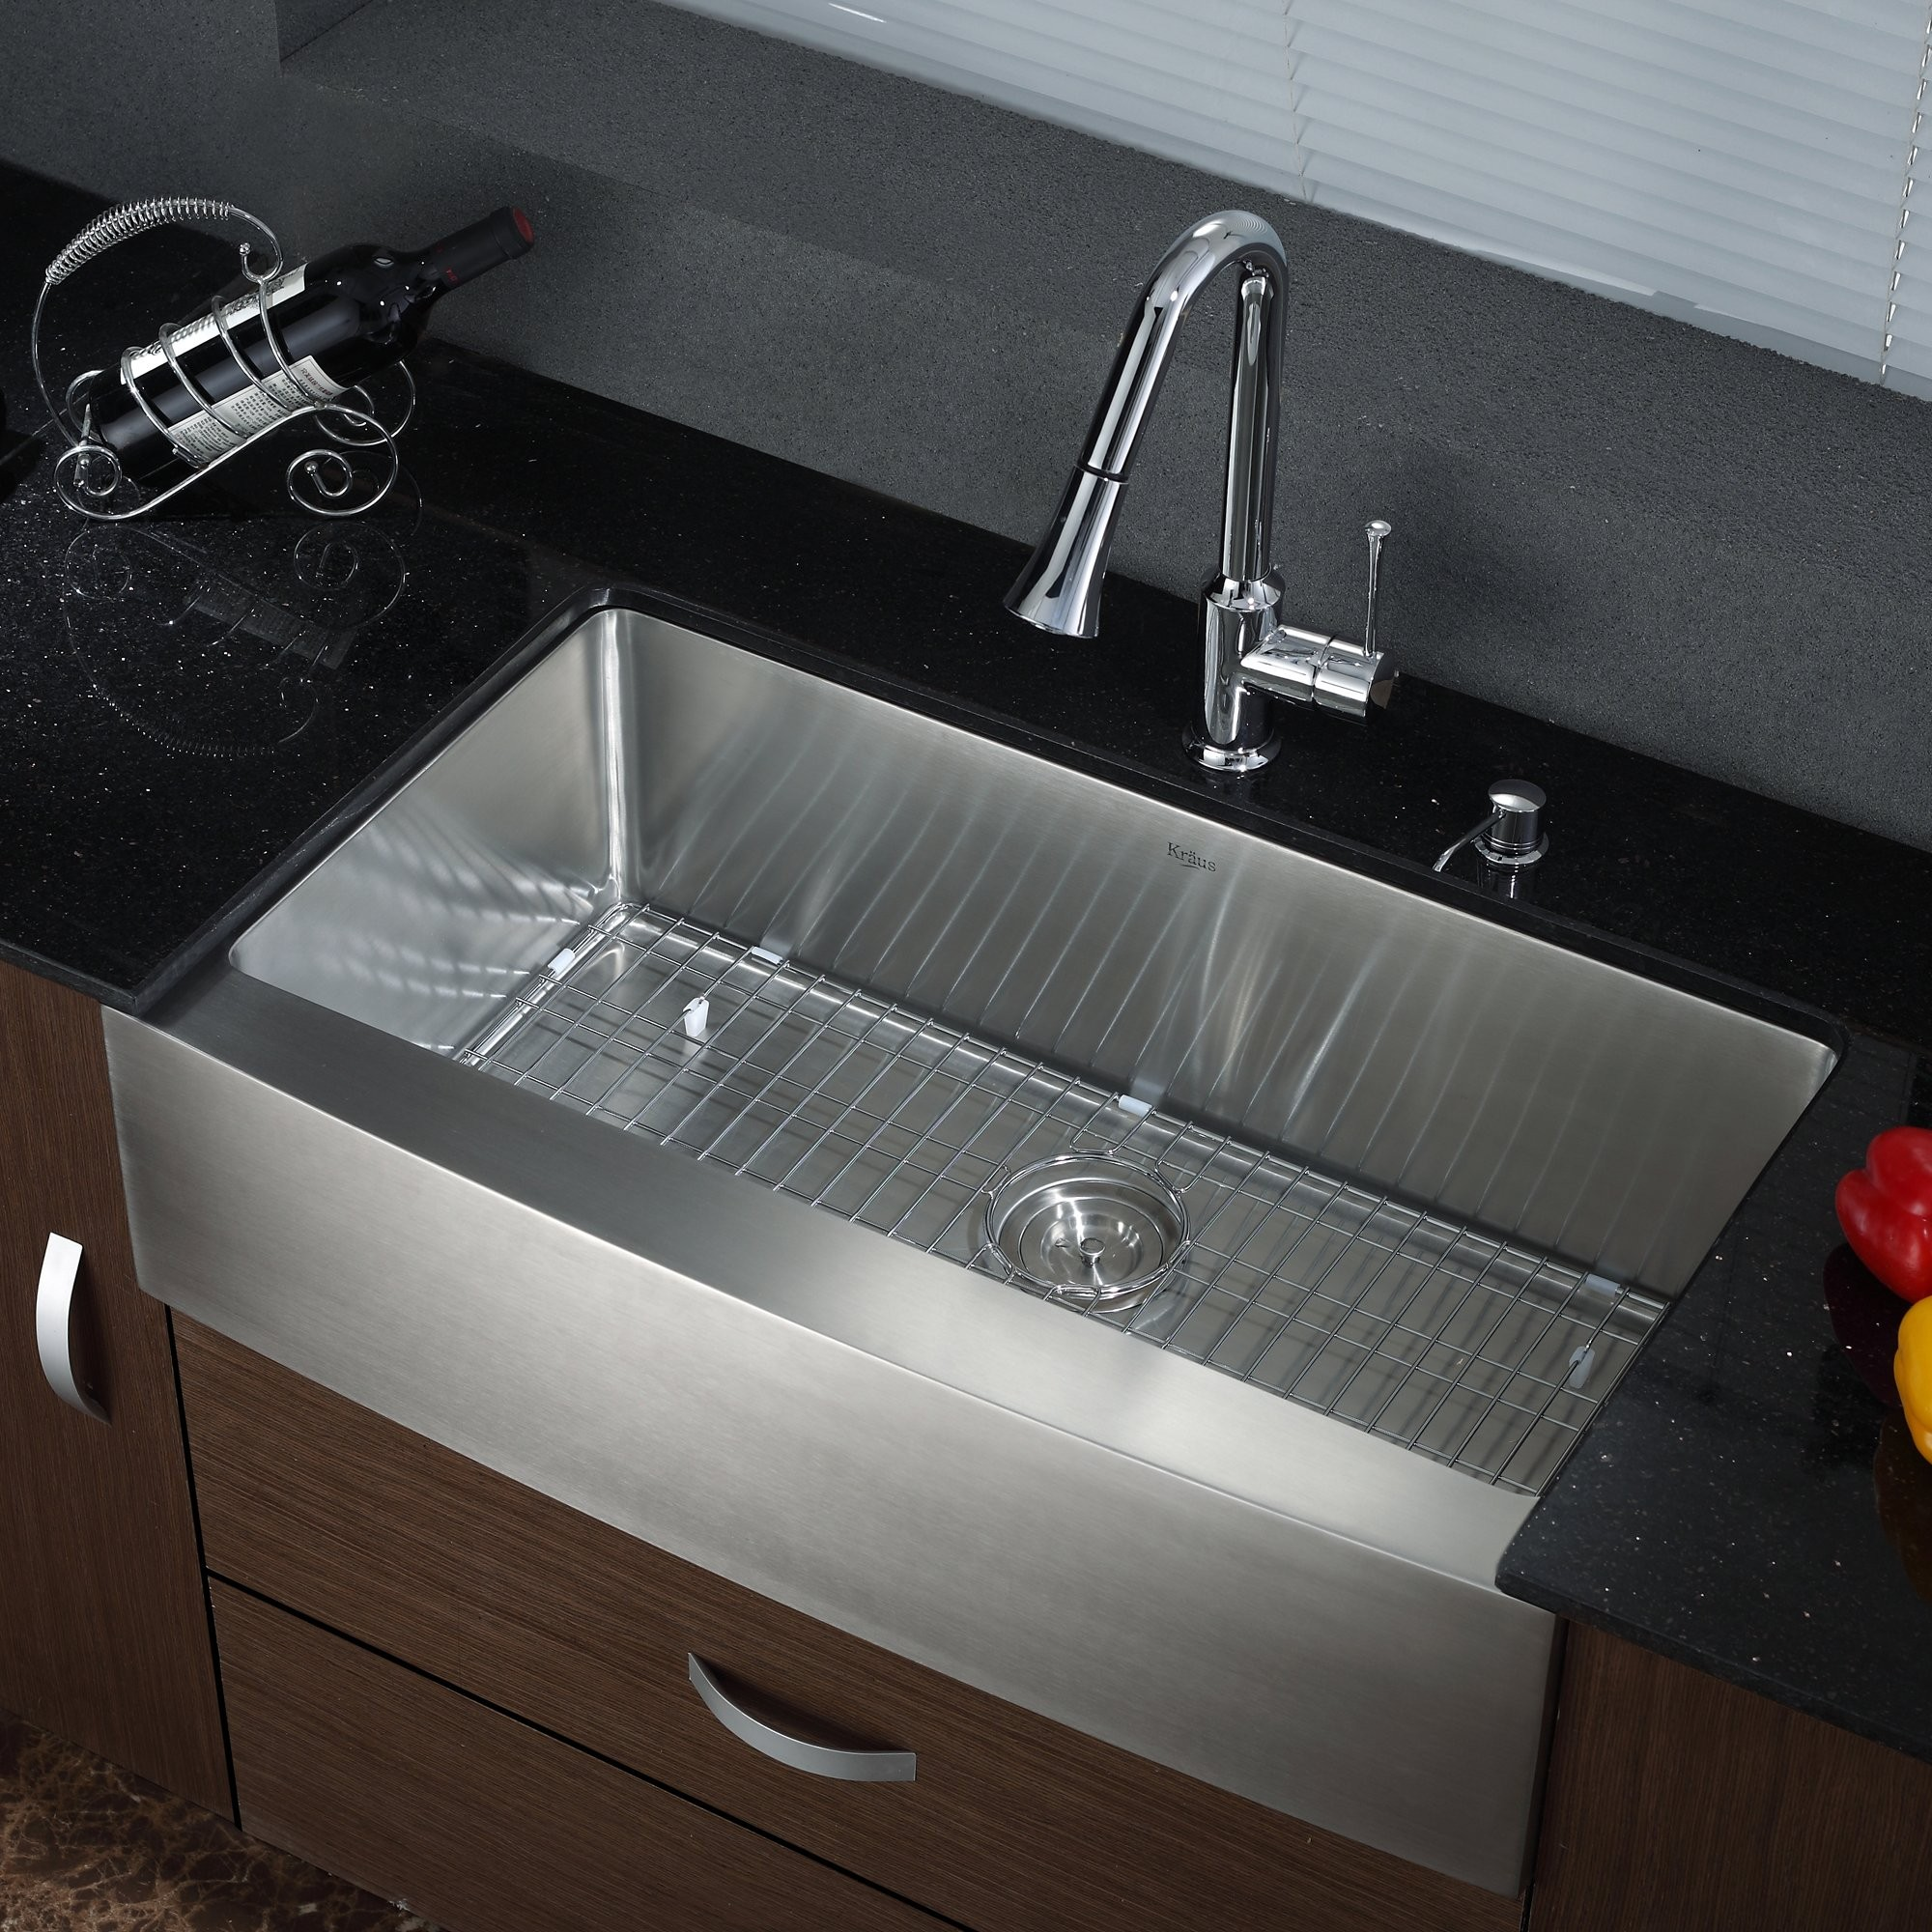 wall-mount-kitchen-faucet-cool-with-photo-2